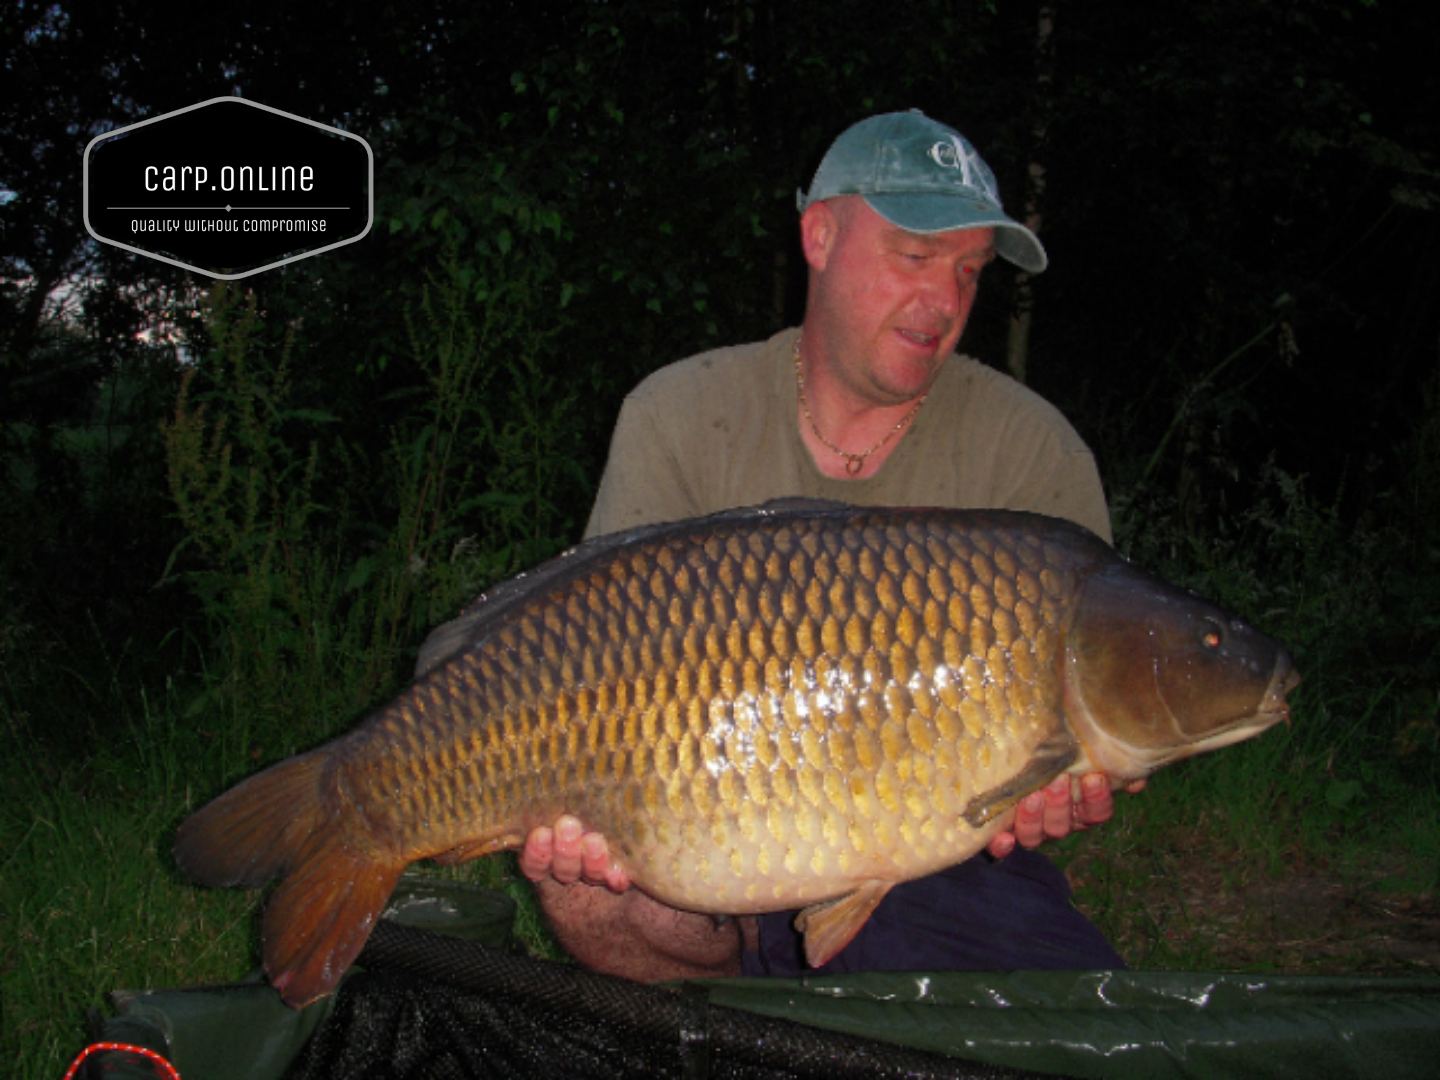 Darren Harries carp tackle online